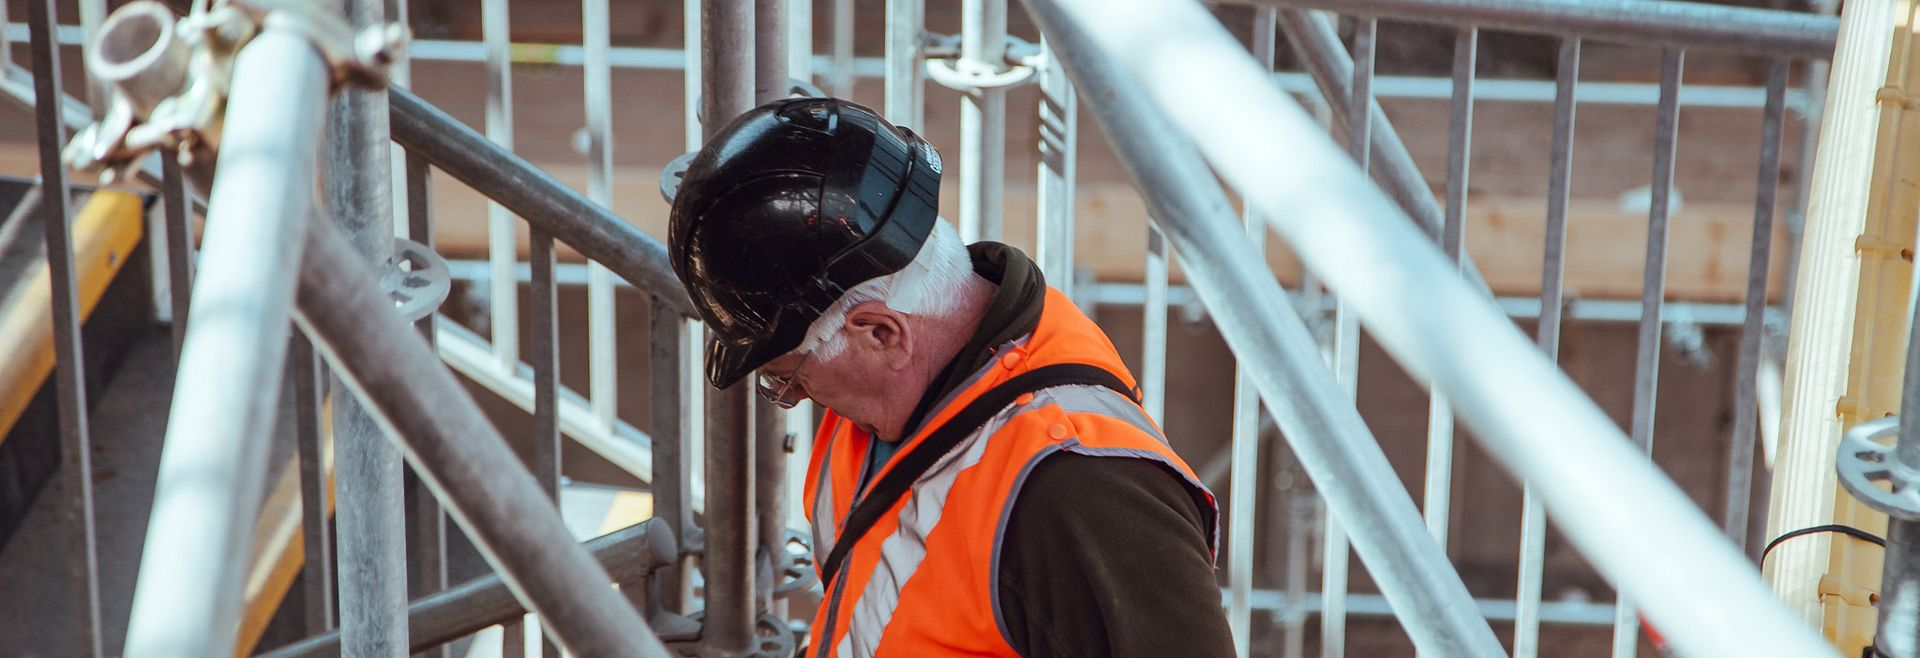 Construction worker inspecting work that has been done